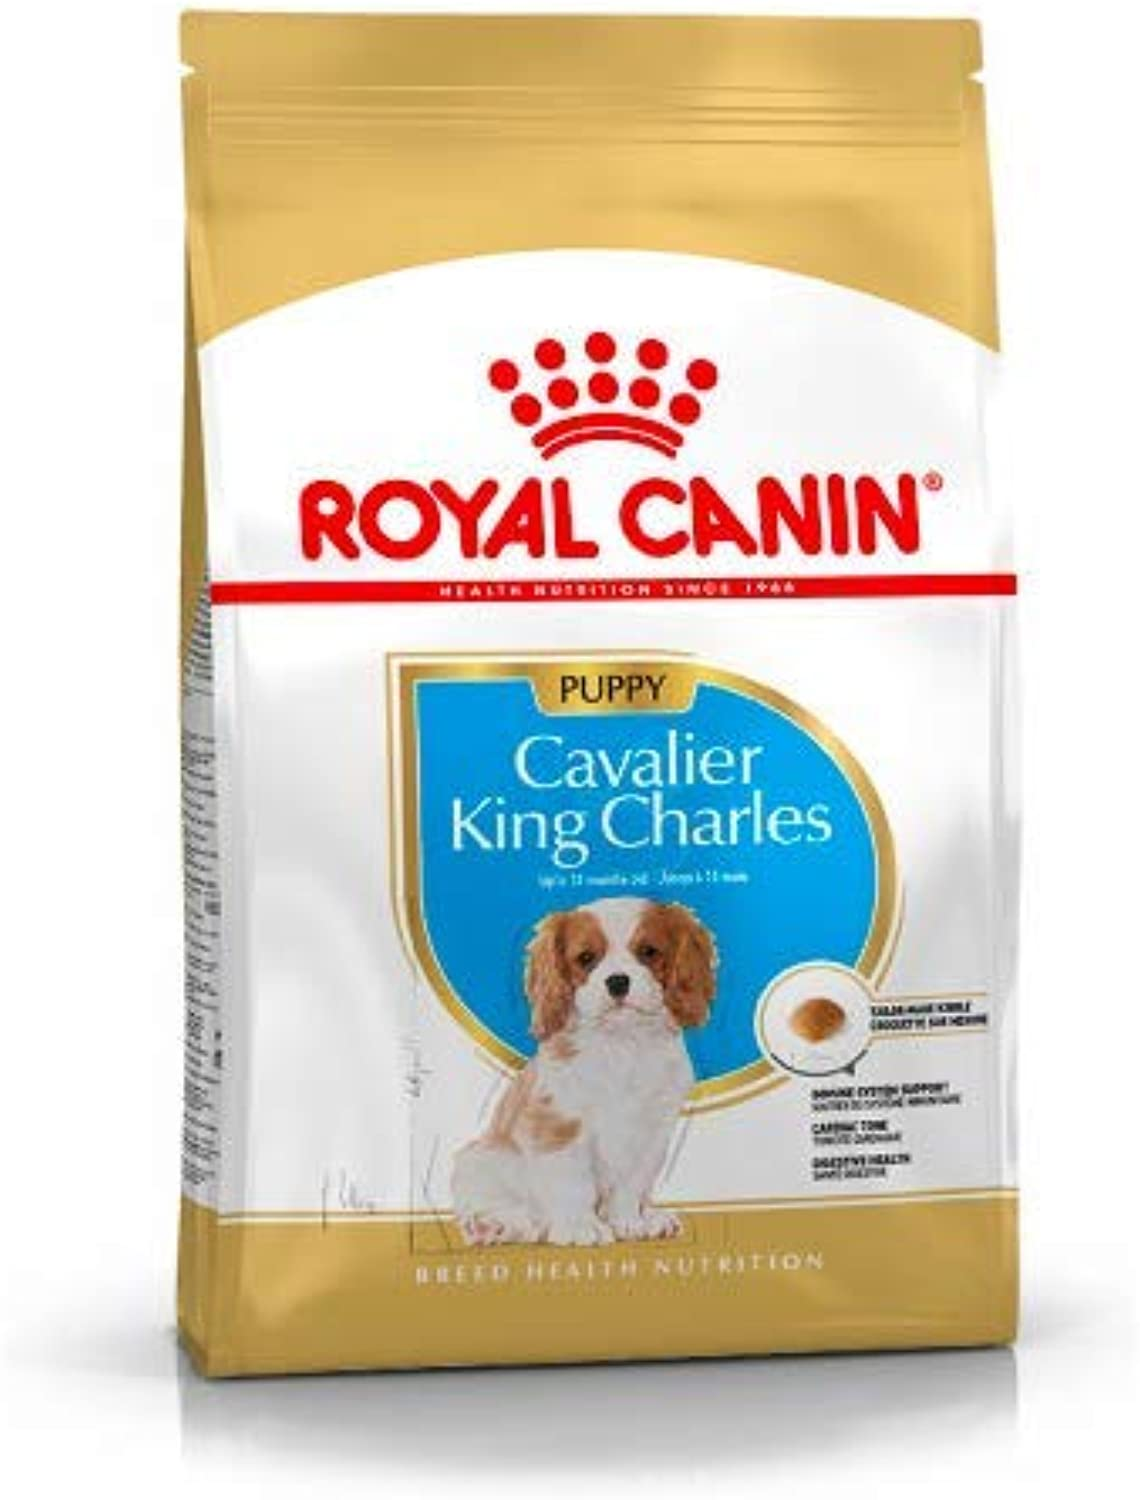 Maltbys' Stores 1904 Limited 7.5kg (5 x 1.5kg) Royal Canin CAVALIER KING CHARLES PUPPY Breed Health Nutrition Dog food